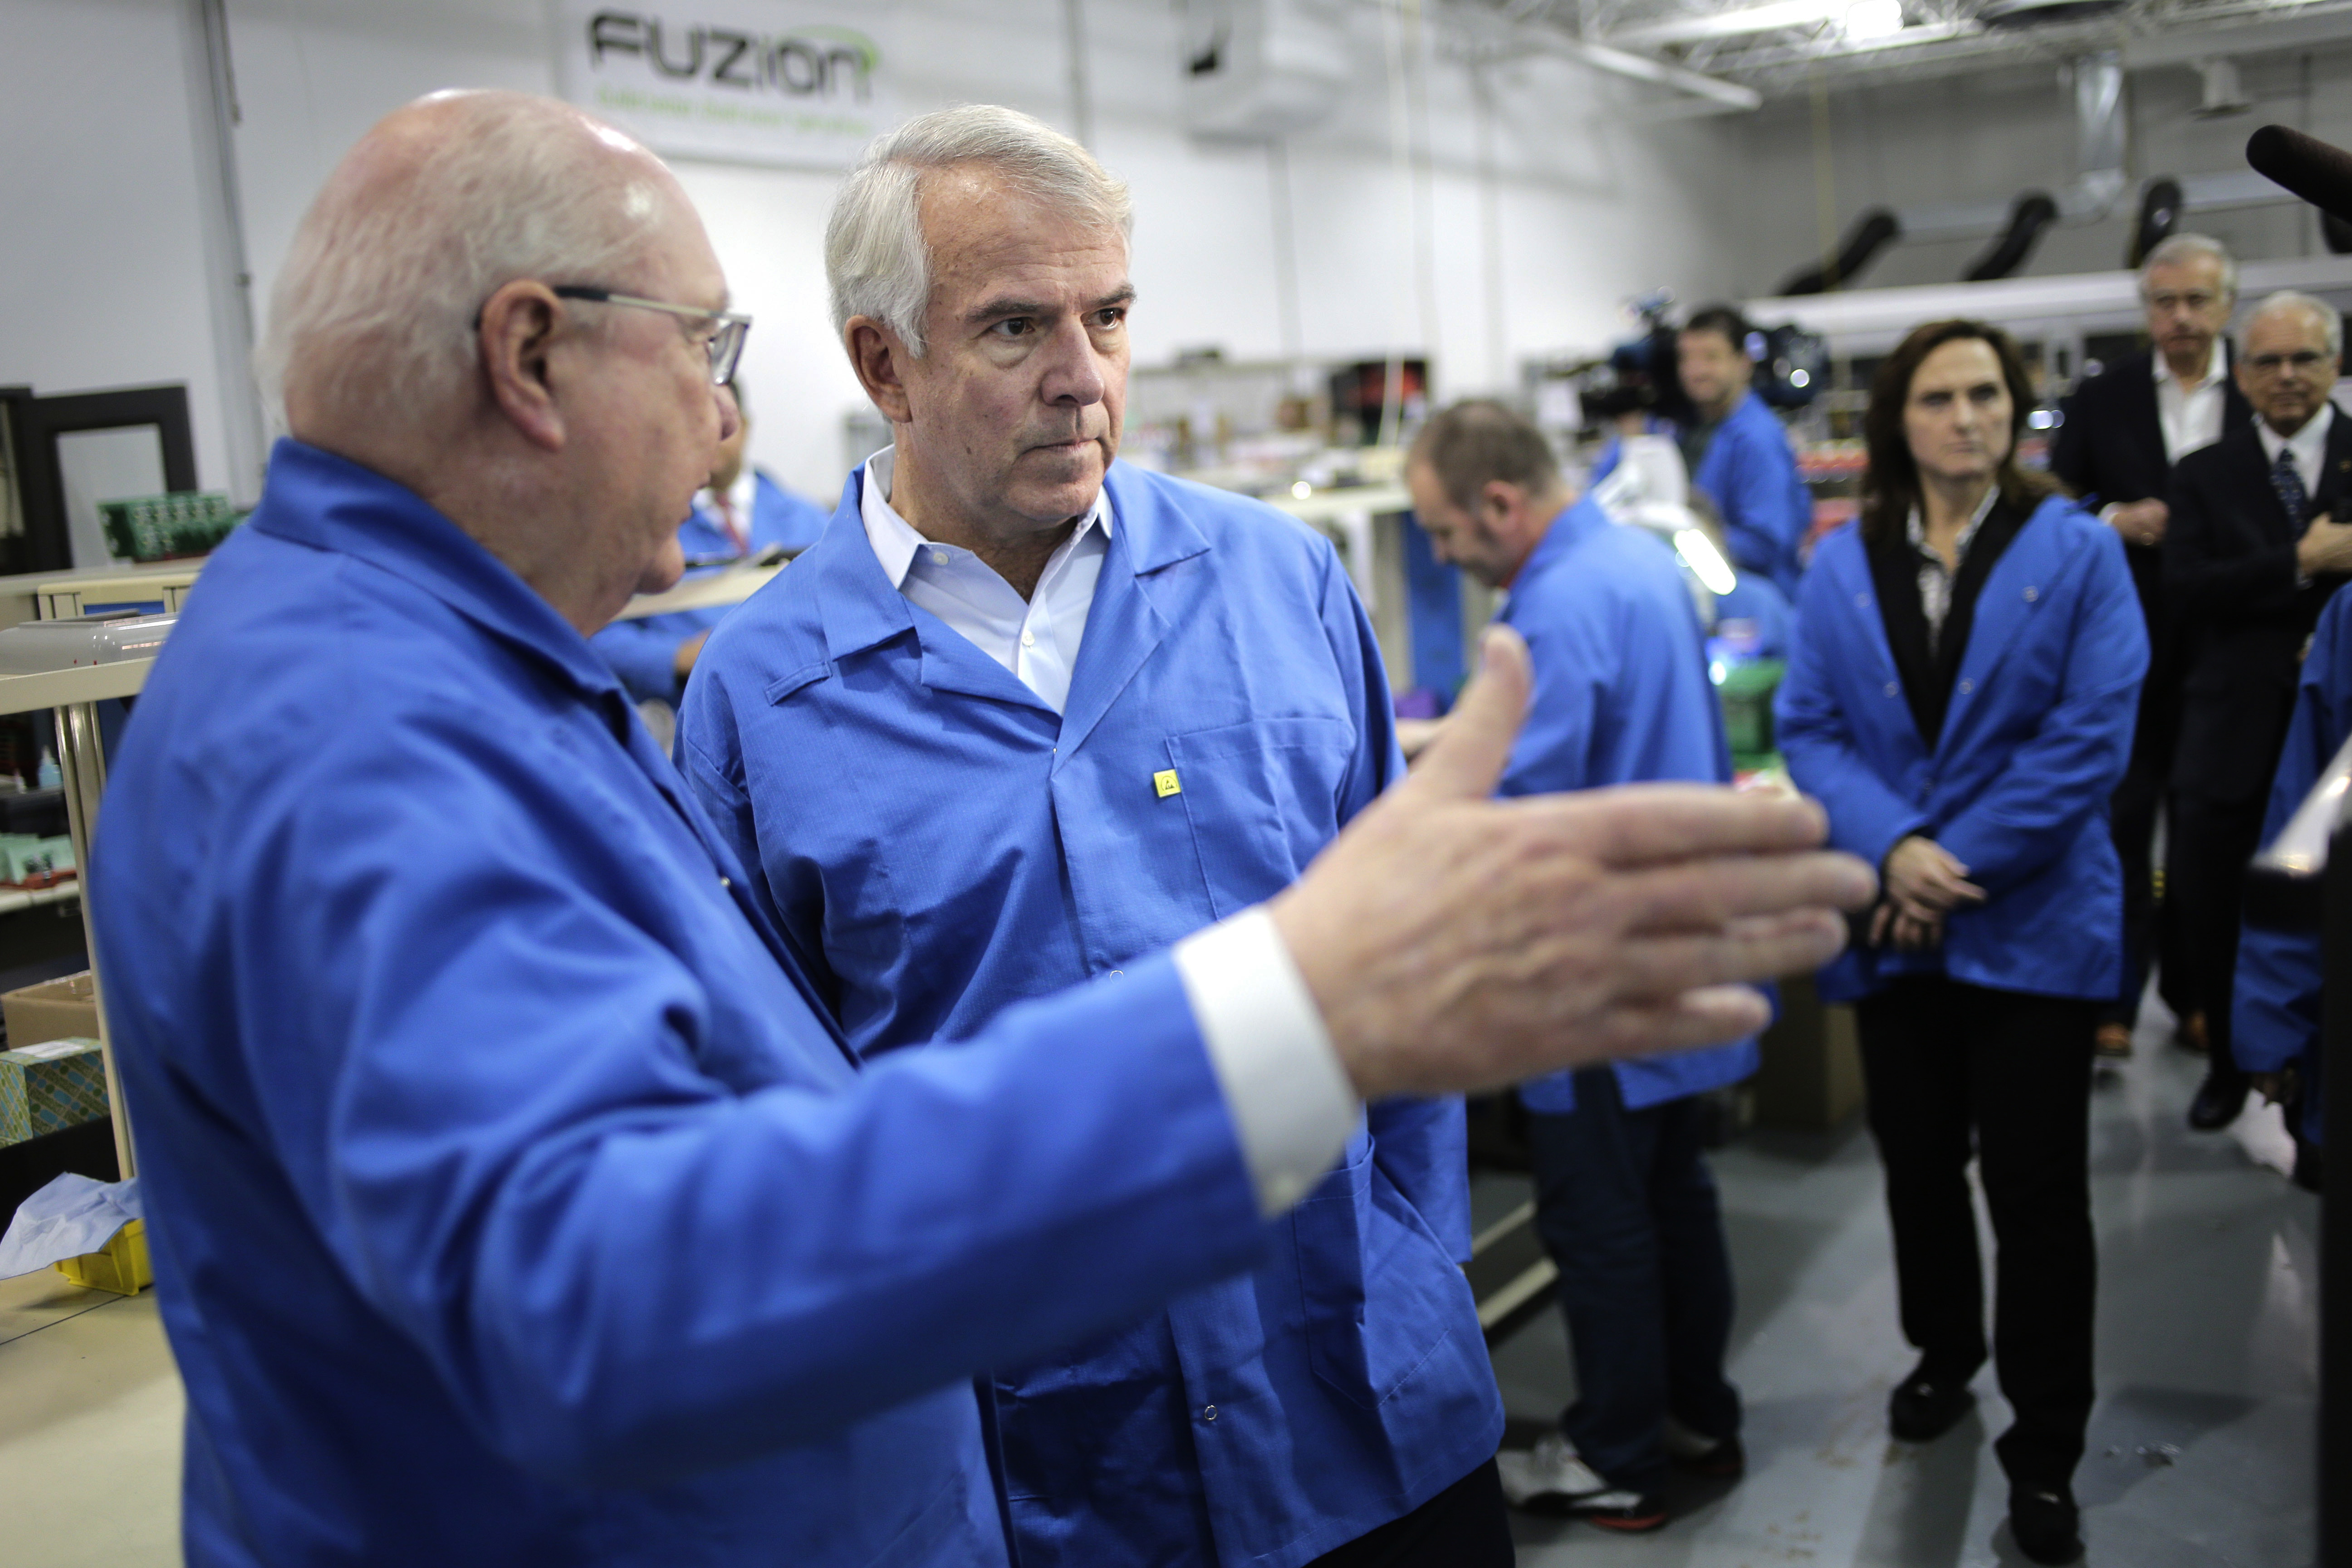 Republican Bob Hugin, center, takes a tour of American Patriot Solutions in Rockaway, N.J., Tuesday, Oct. 30, 2018. Hugin, a former drug company executive, is running for Senate against Democrat Bob Menendez.